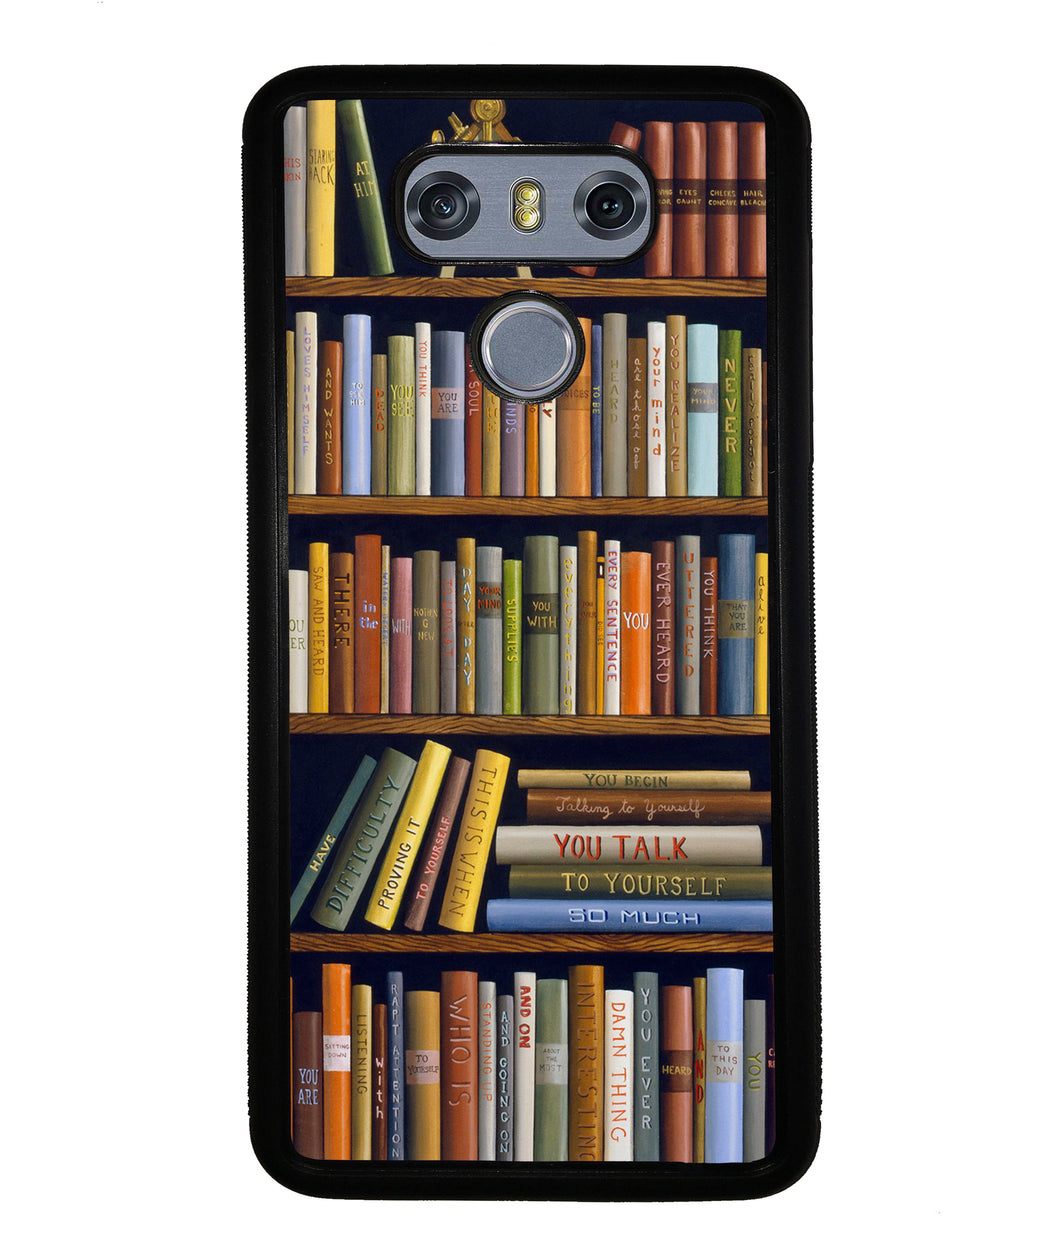 Book Shelf | LG Phone Case